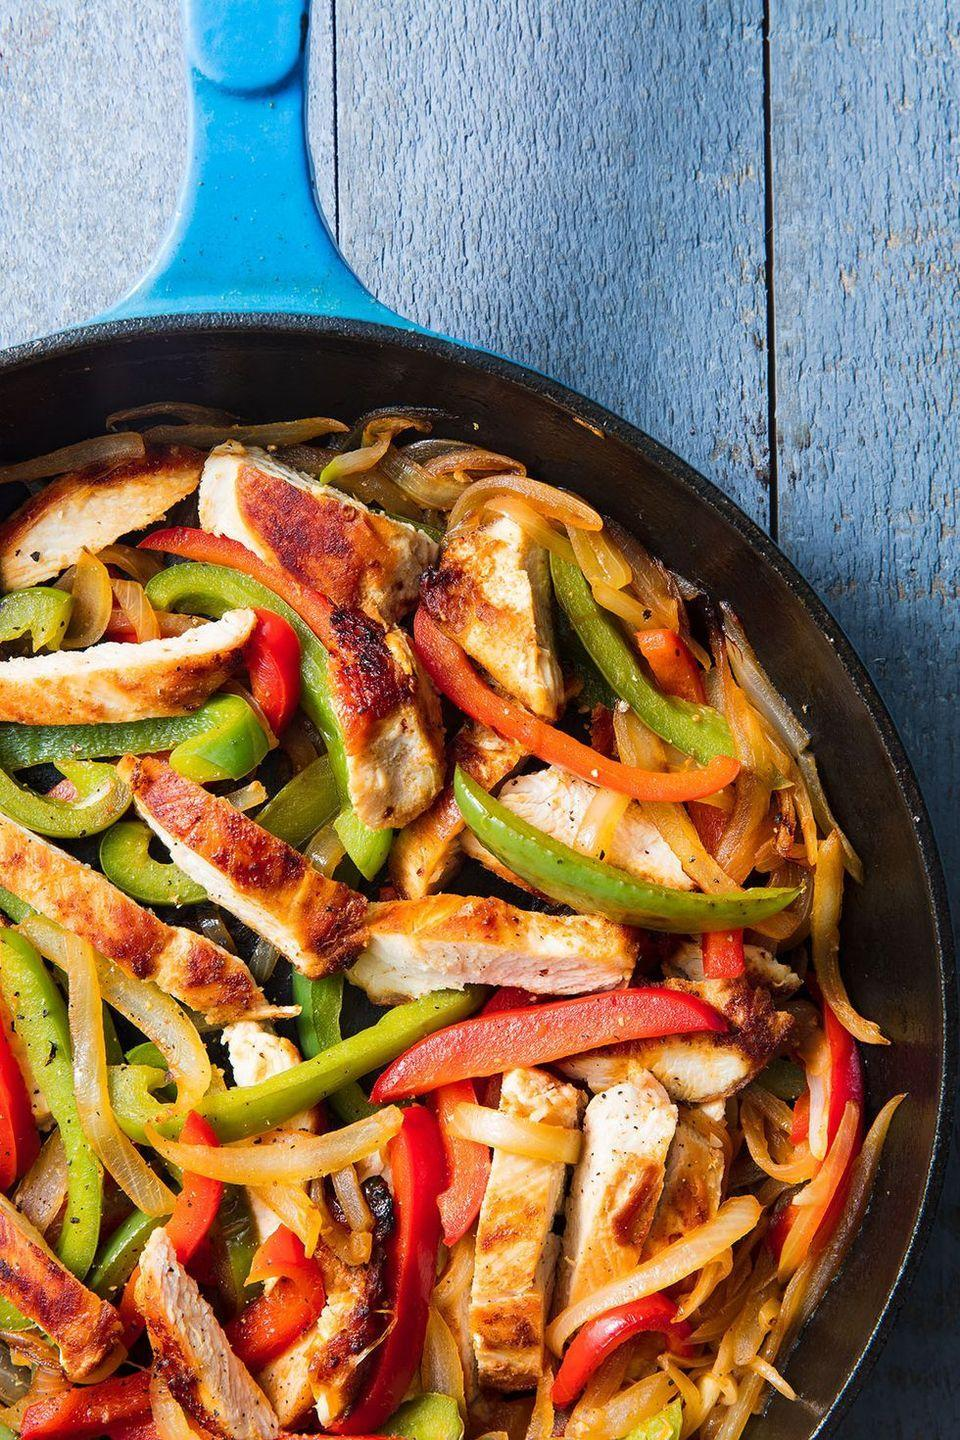 "<p>Fajitas are the perfect <a href=""https://www.delish.com/uk/cooking/recipes/g32768299/easy-dinner-recipes/"" rel=""nofollow noopener"" target=""_blank"" data-ylk=""slk:weeknight dinner"" class=""link rapid-noclick-resp"">weeknight dinner</a>. Minimal prep and minimal cook time means these can be on your table FAST</p><p>Get the <a href=""https://www.delish.com/uk/cooking/recipes/a30146397/easy-chicken-fajitas-recipe/"" rel=""nofollow noopener"" target=""_blank"" data-ylk=""slk:Chicken Fajitas"" class=""link rapid-noclick-resp"">Chicken Fajitas</a> recipe.</p>"